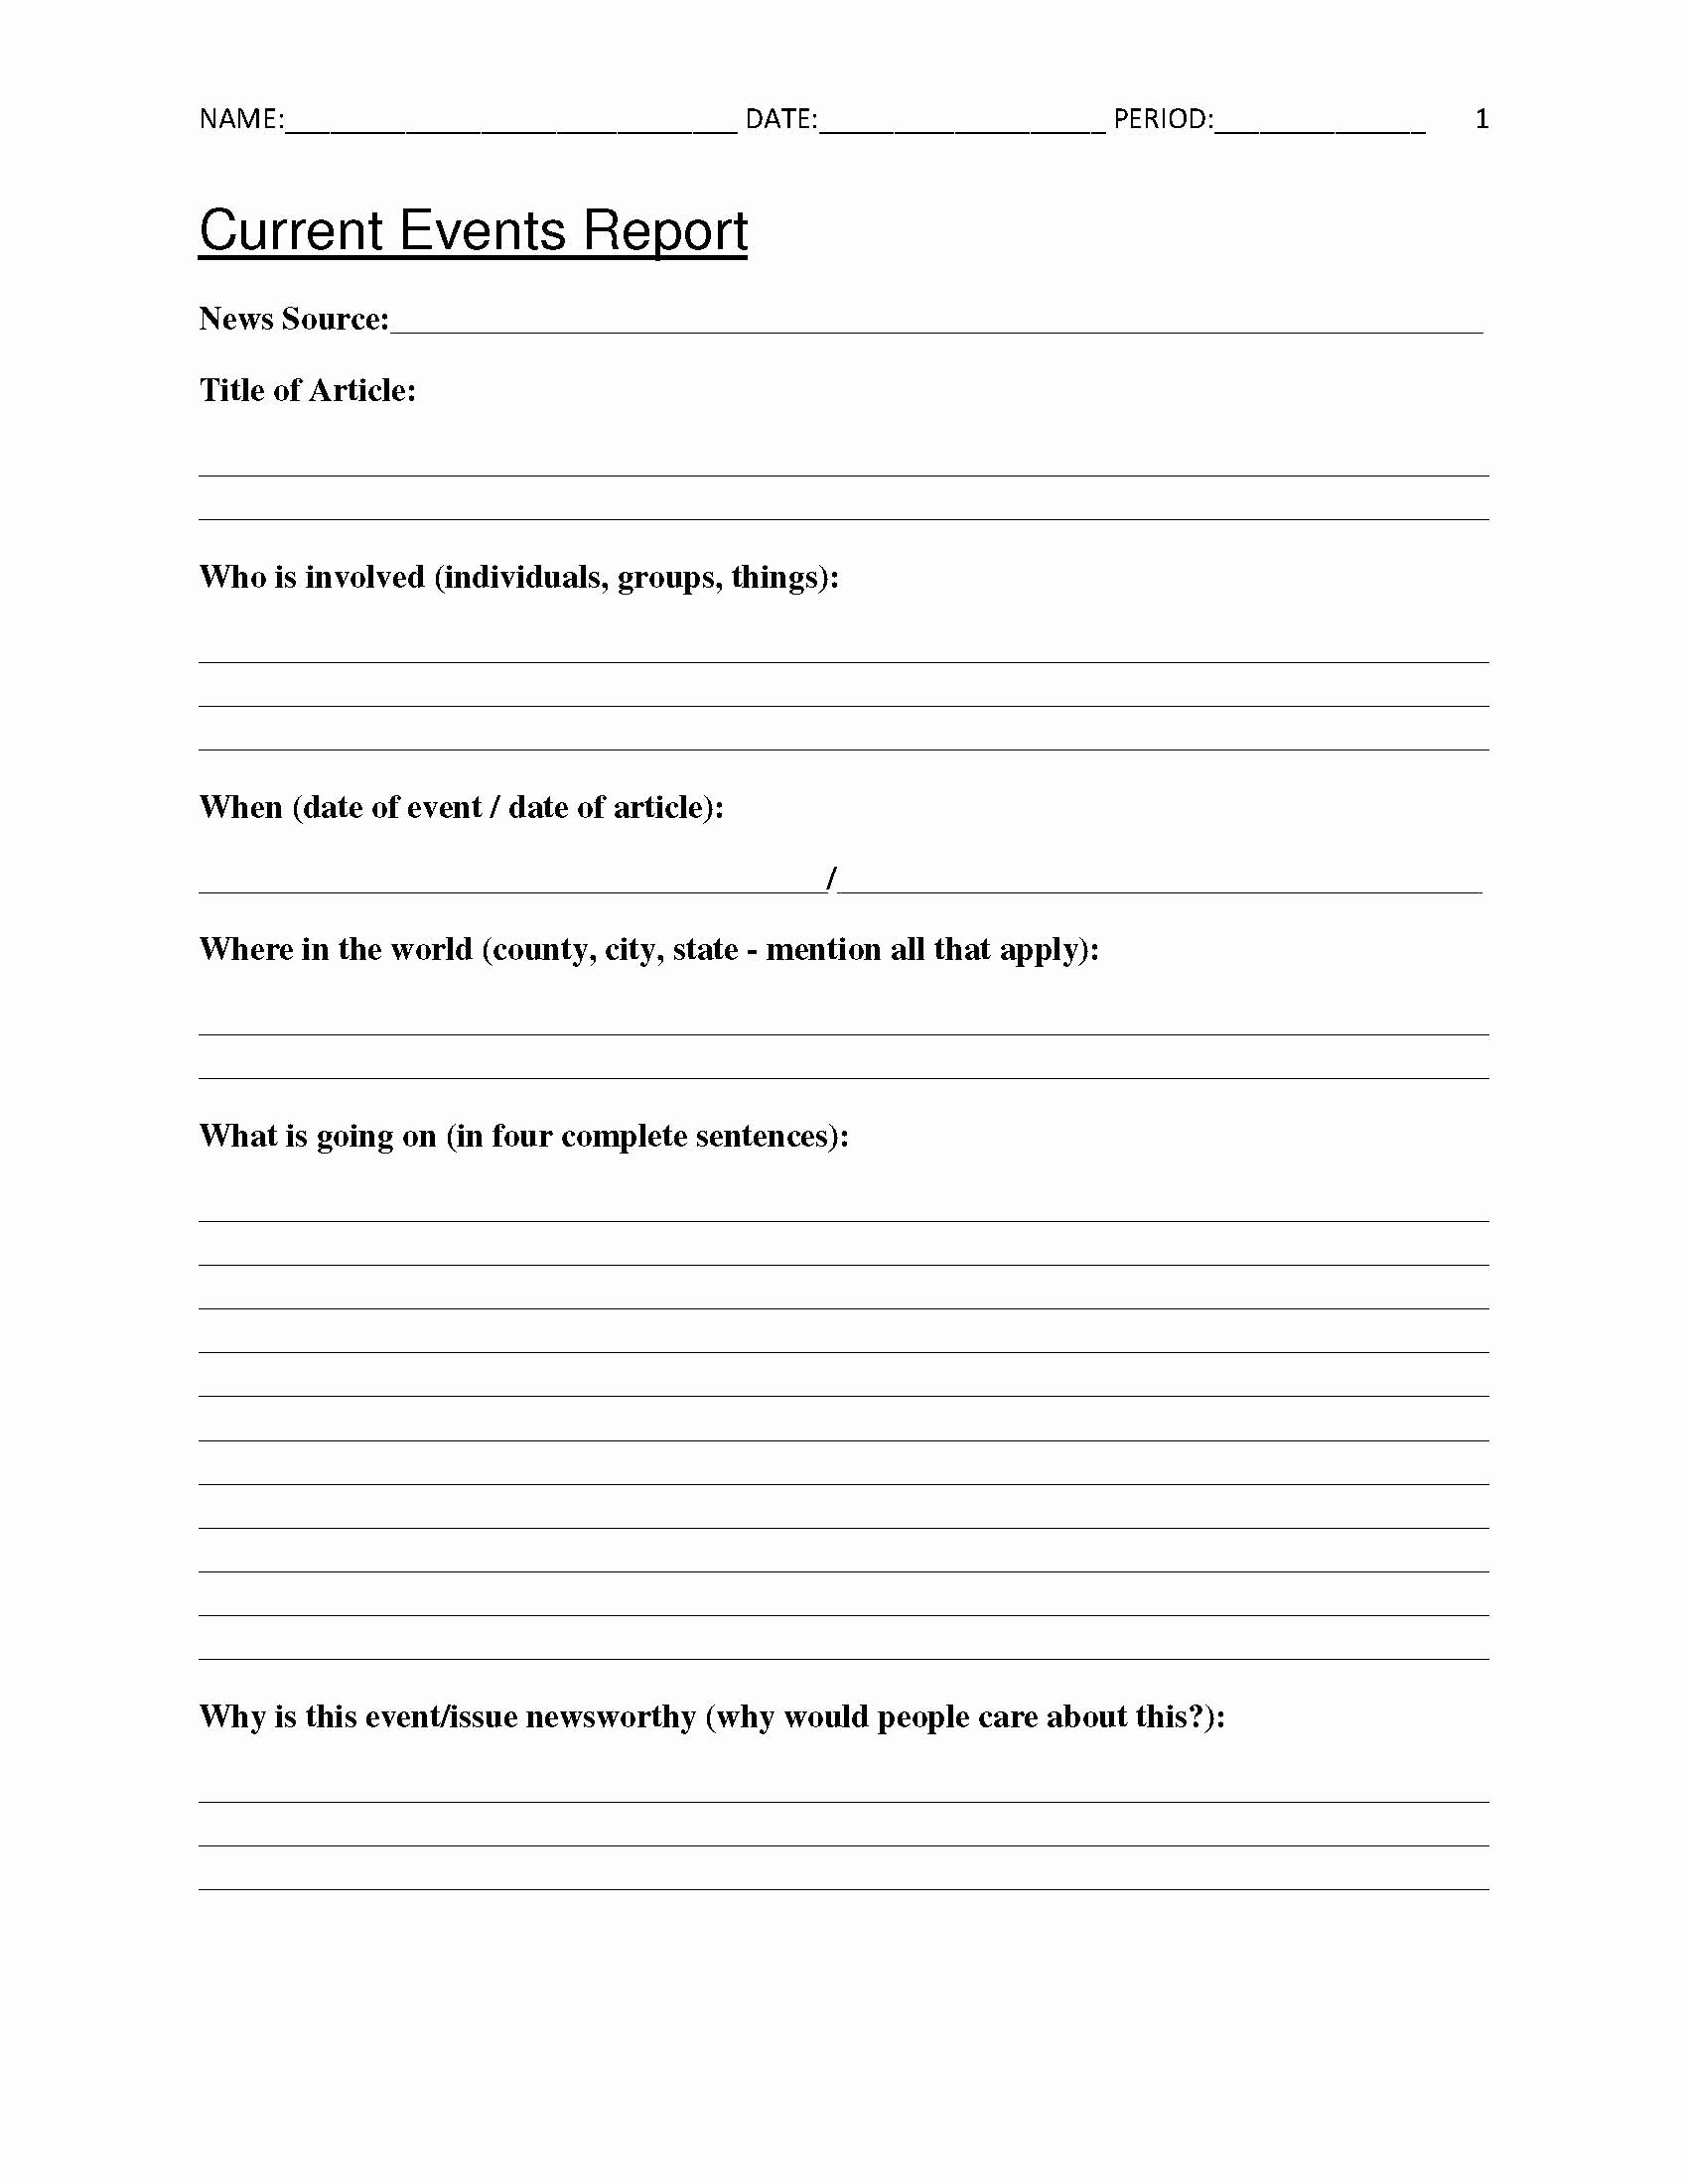 Current event Worksheet High School Best Of Free Current events Report Worksheet for Classroom Teachers